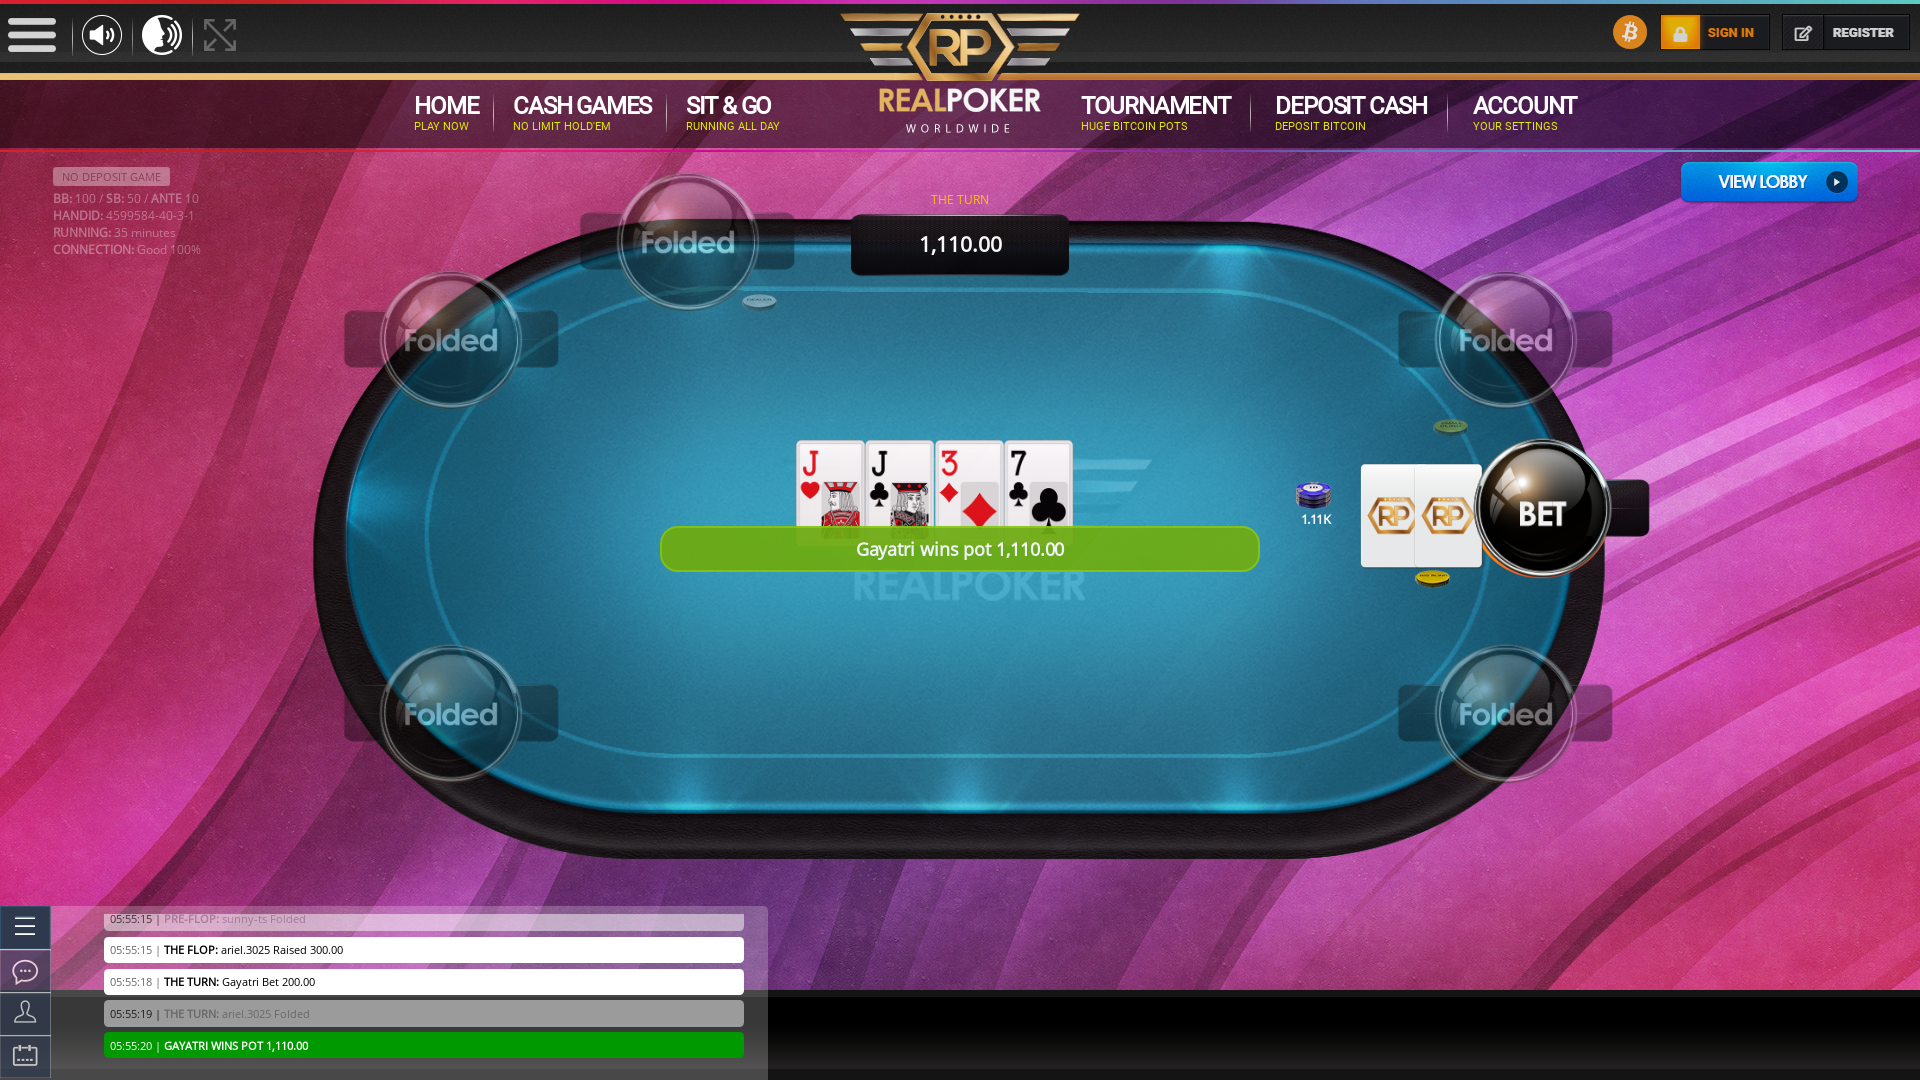 Rio de Janeiro poker table on a 10 player table in the 35th minute